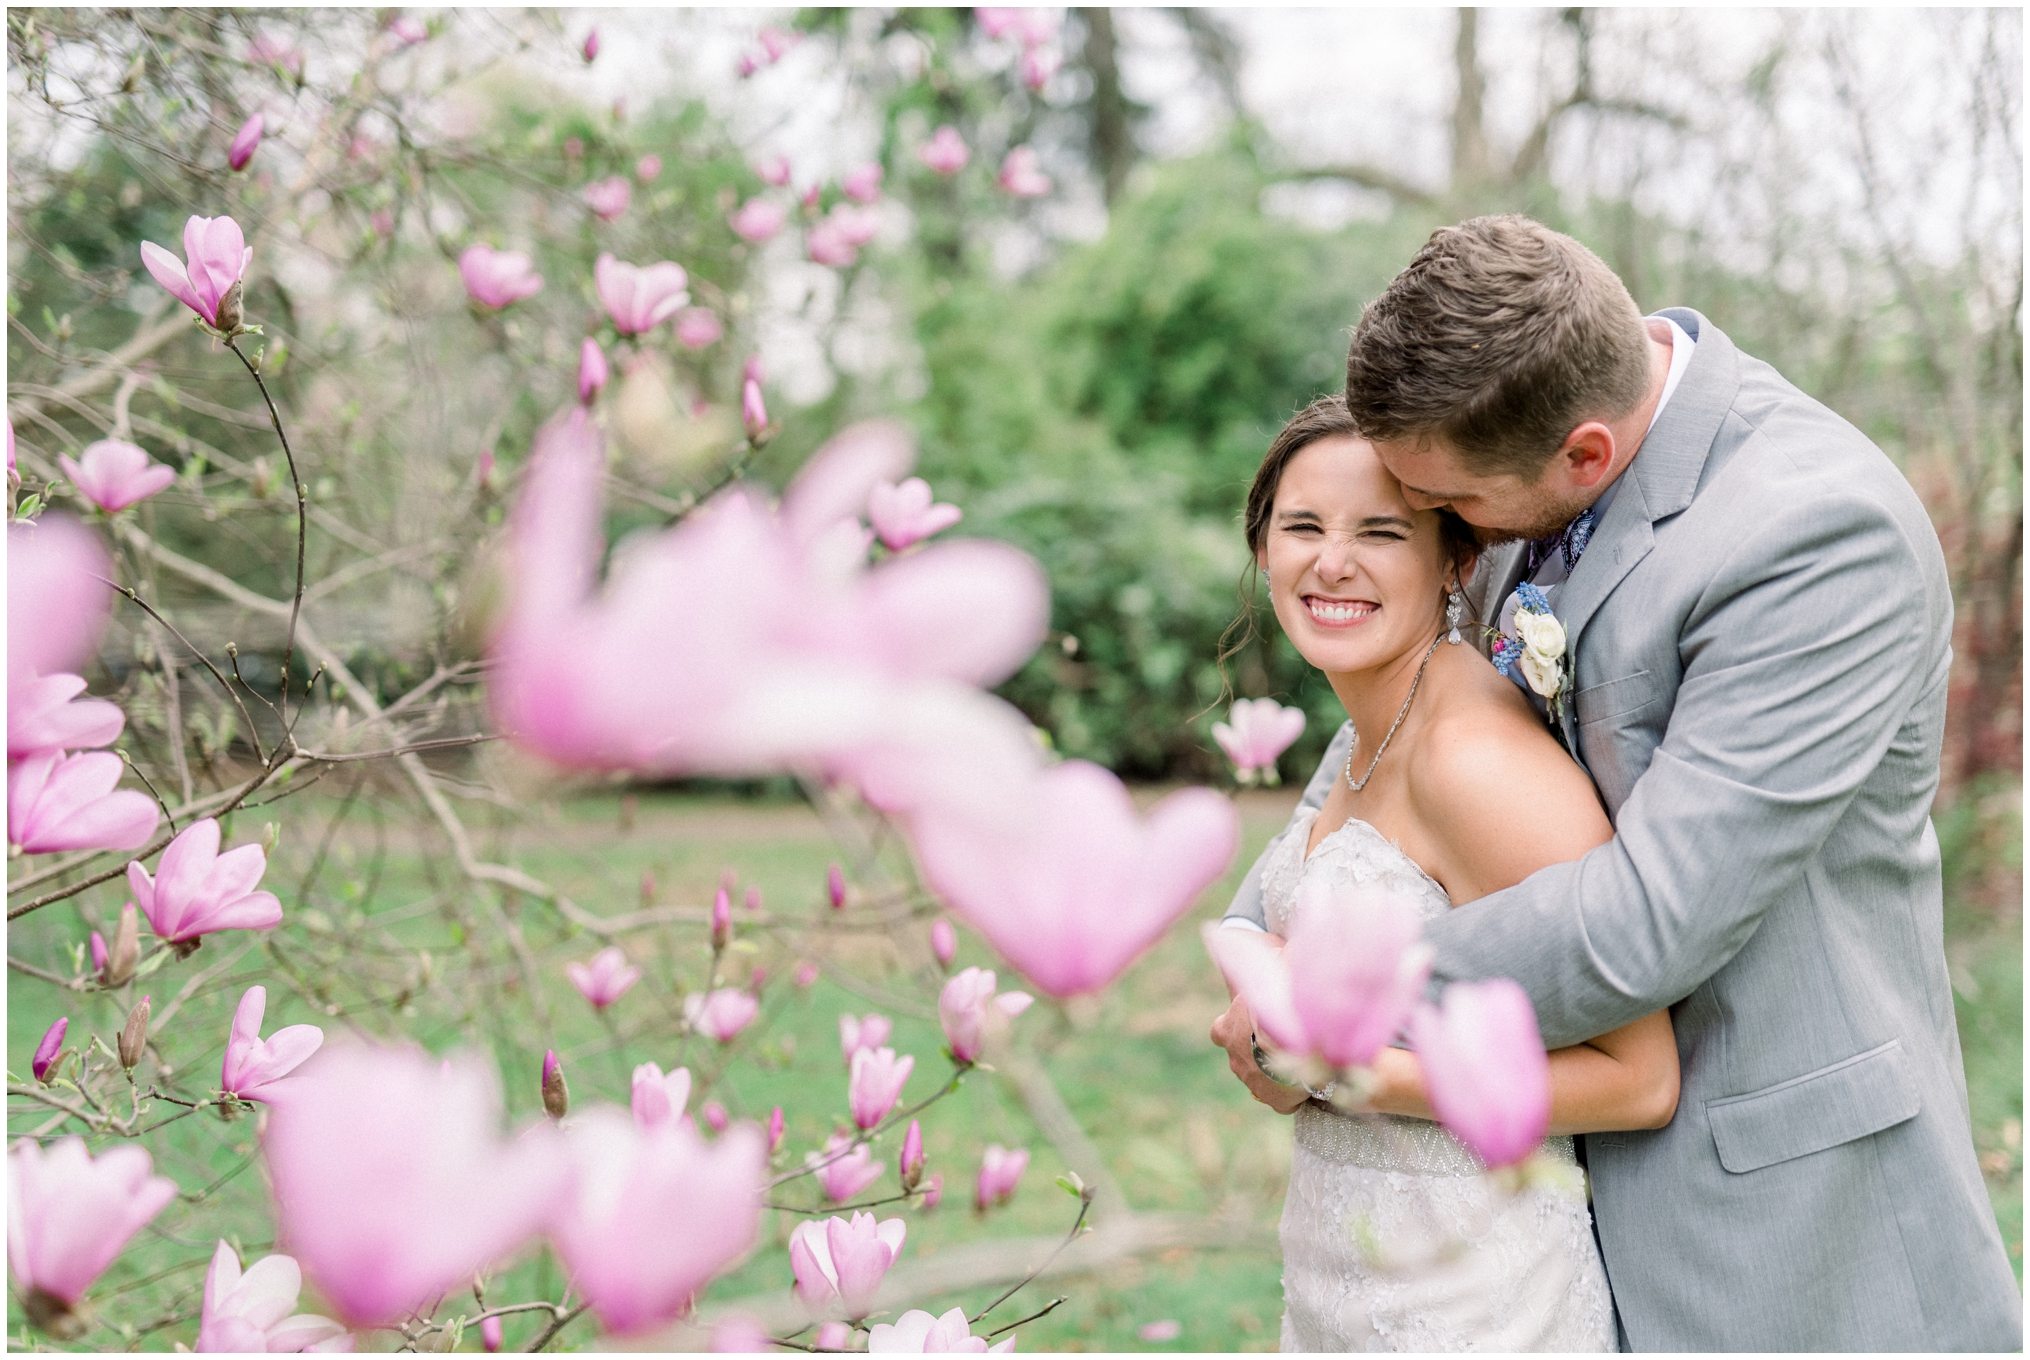 Krista Brackin Photography | April Wedding at The Carriage House at Rockwood Park_0090.jpg